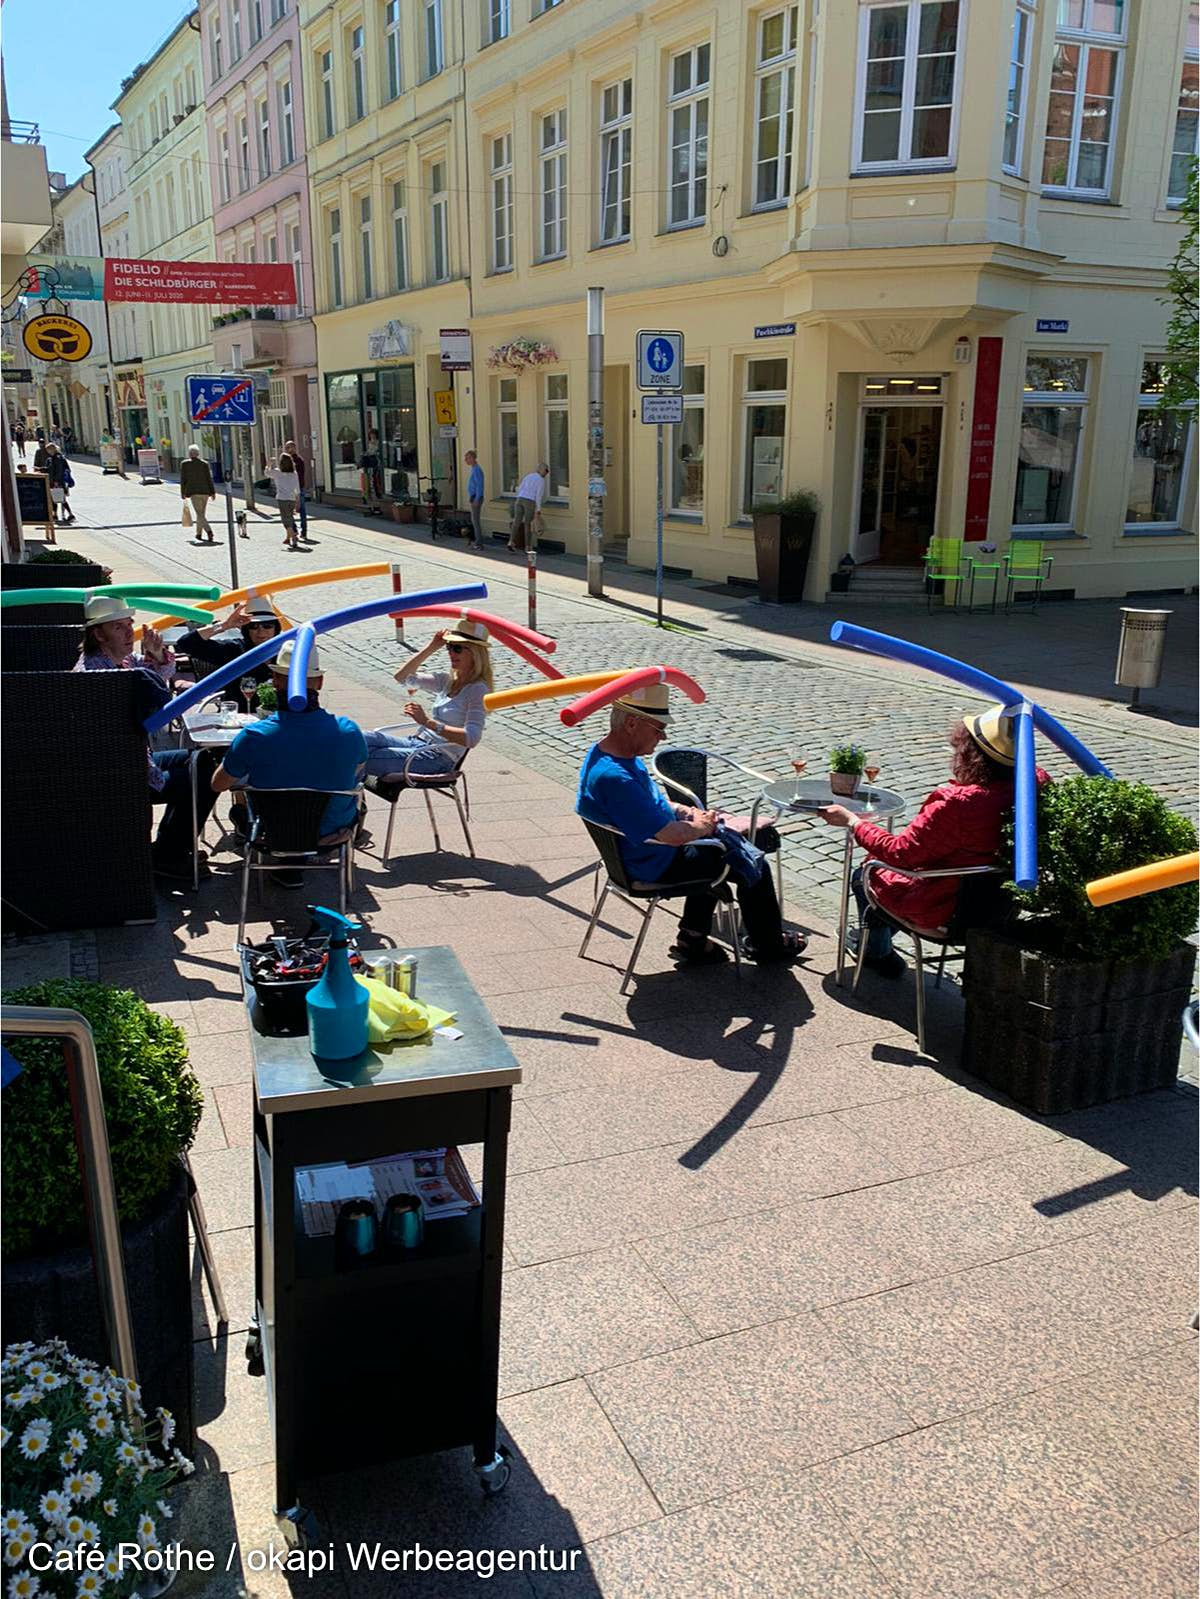 German café finds hilarious way to encourage social distancing - Lonely Planet